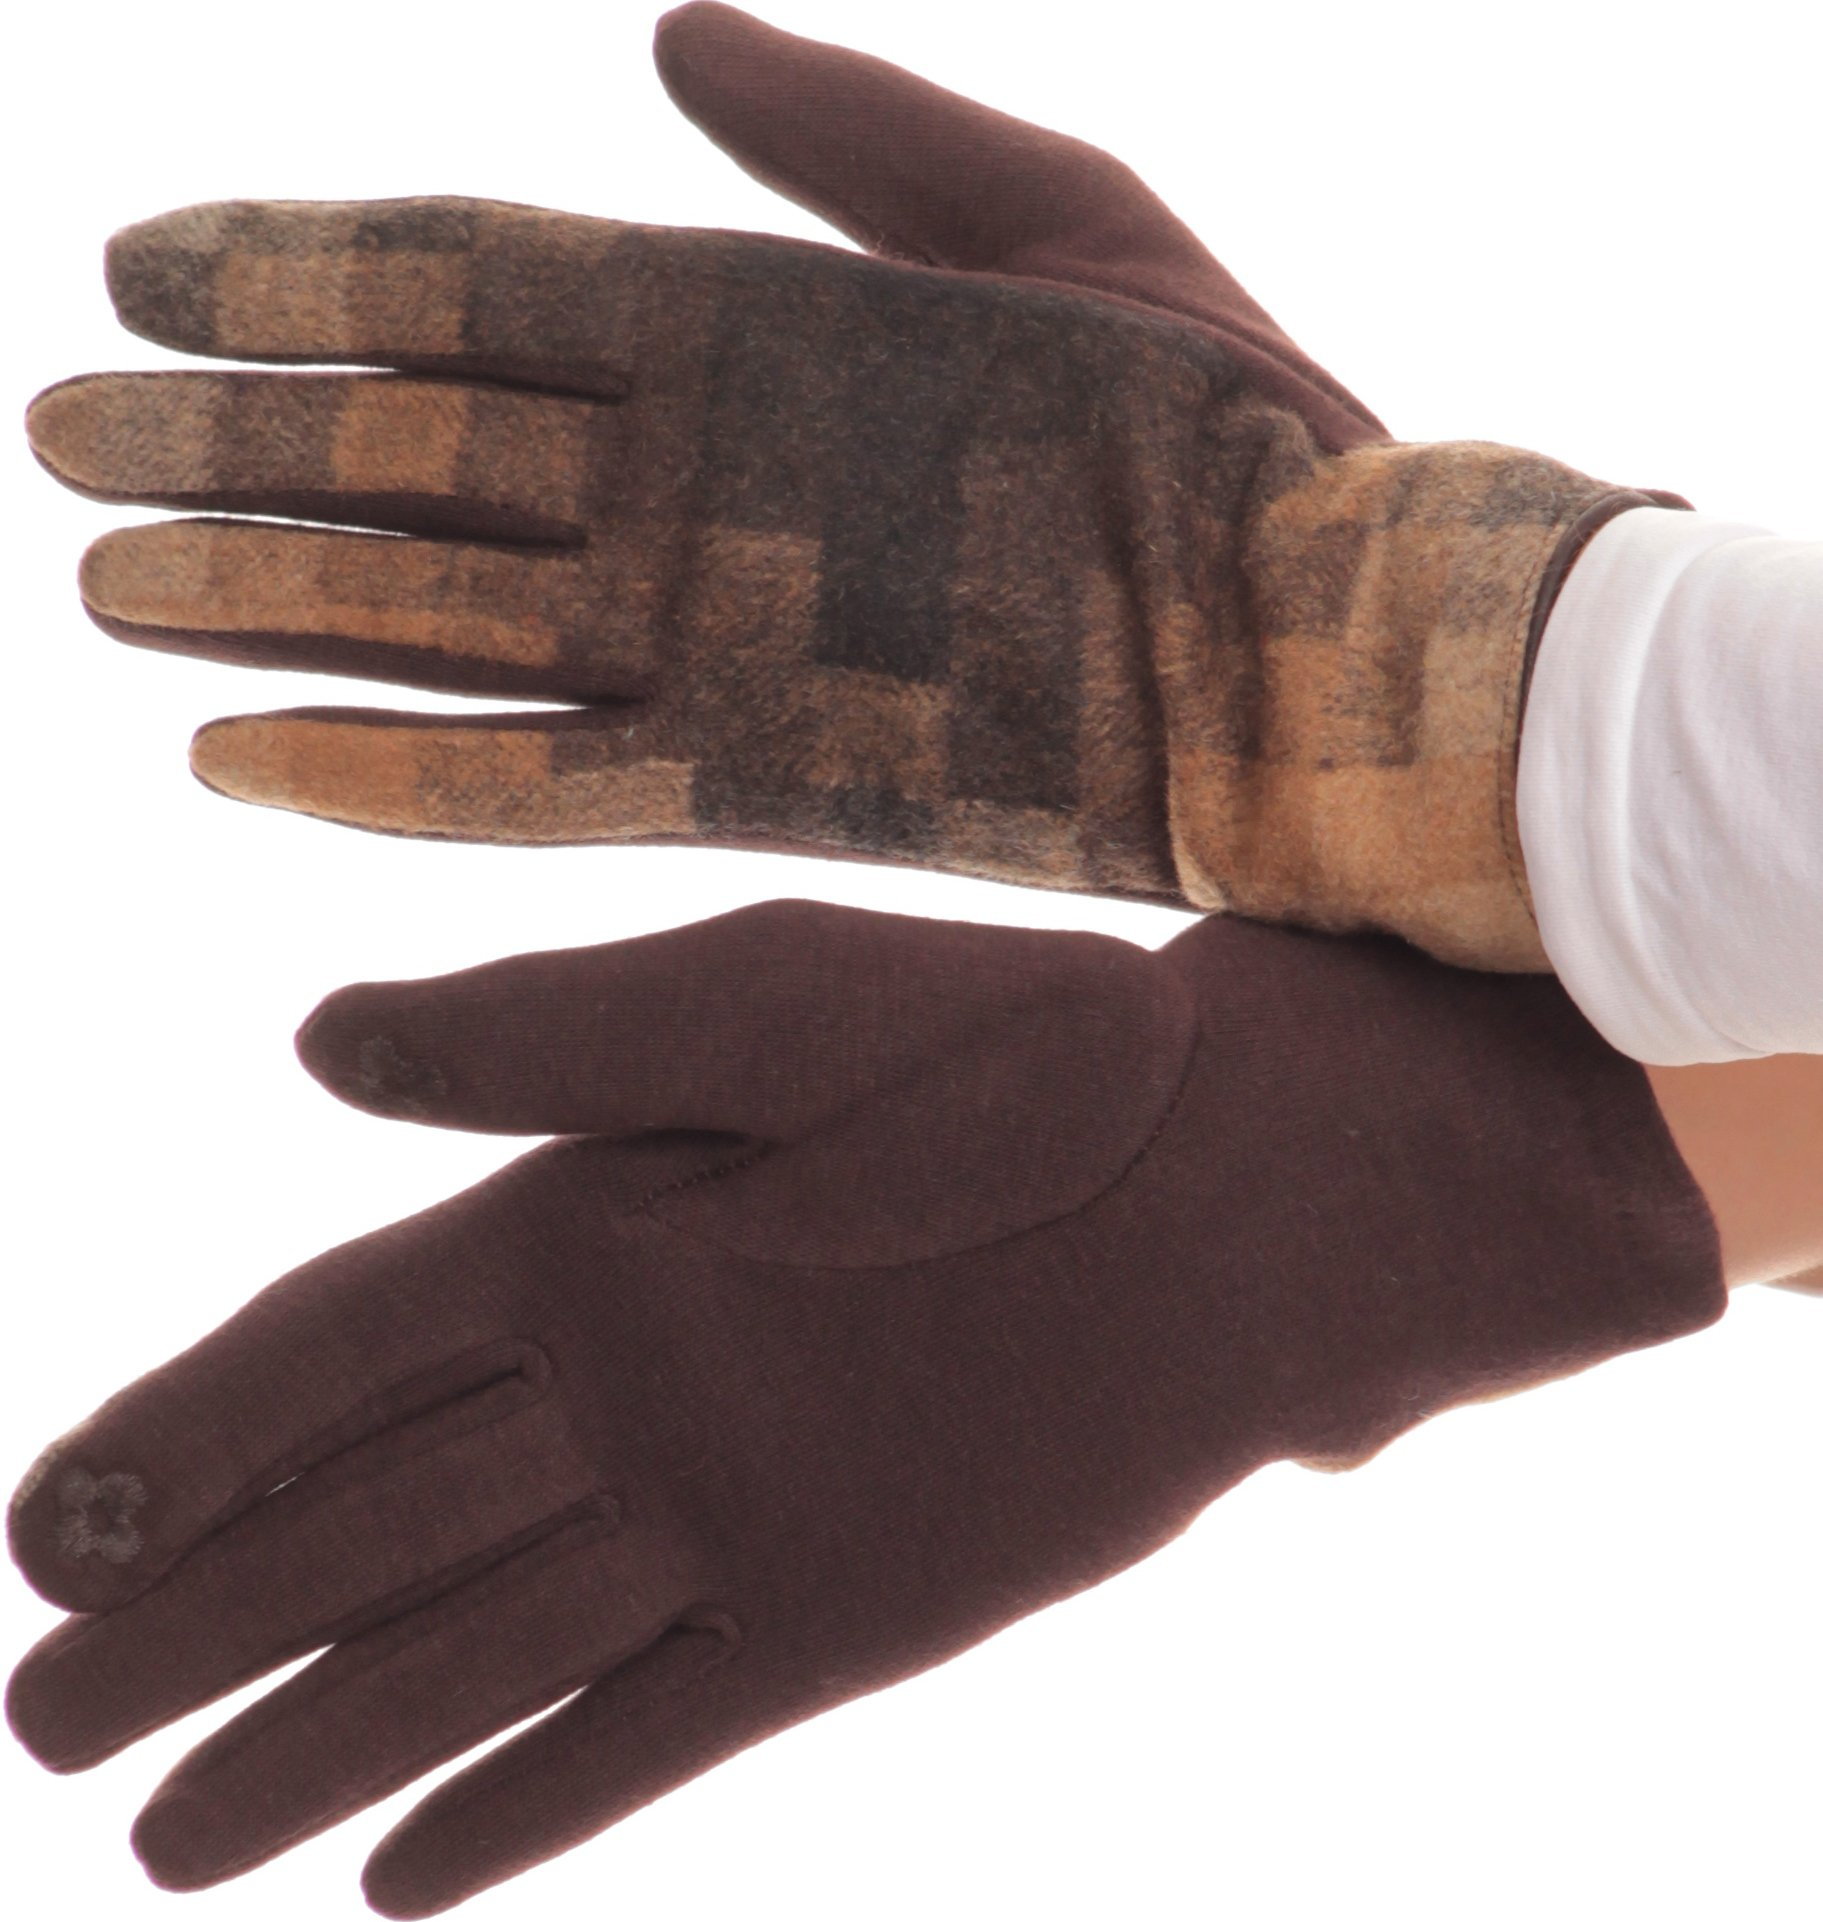 Sakkas 16168 - Kade Pixel Ombre Multi Colored Patterned Warm Touch Screen Winter Gloves - Brown - L/XL